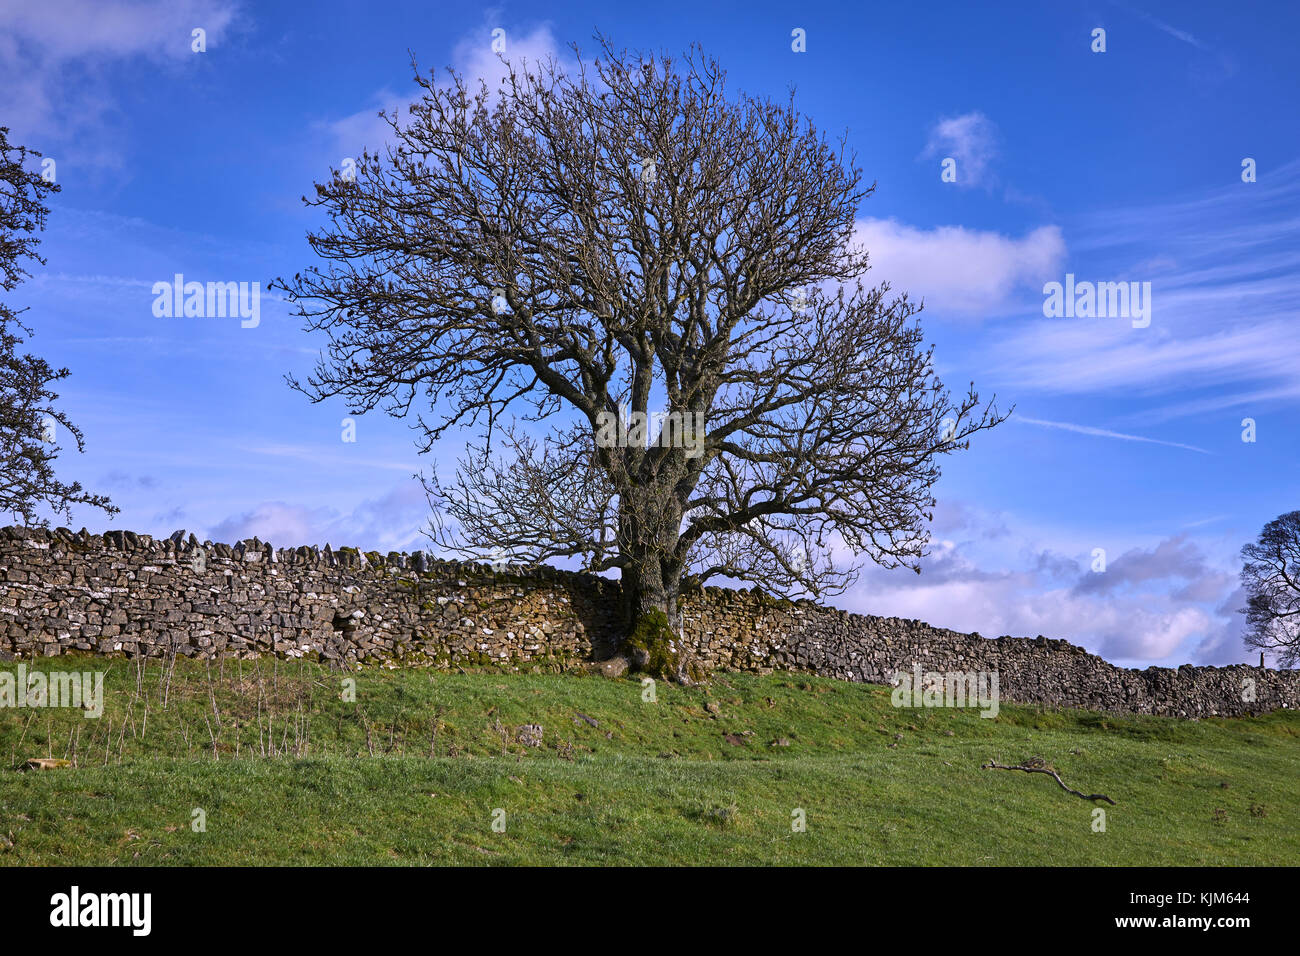 Leafless Ash tree and drystone wall contrasted against a blue, autumnal sky. Looking South East on footpath Keld - Stock Image